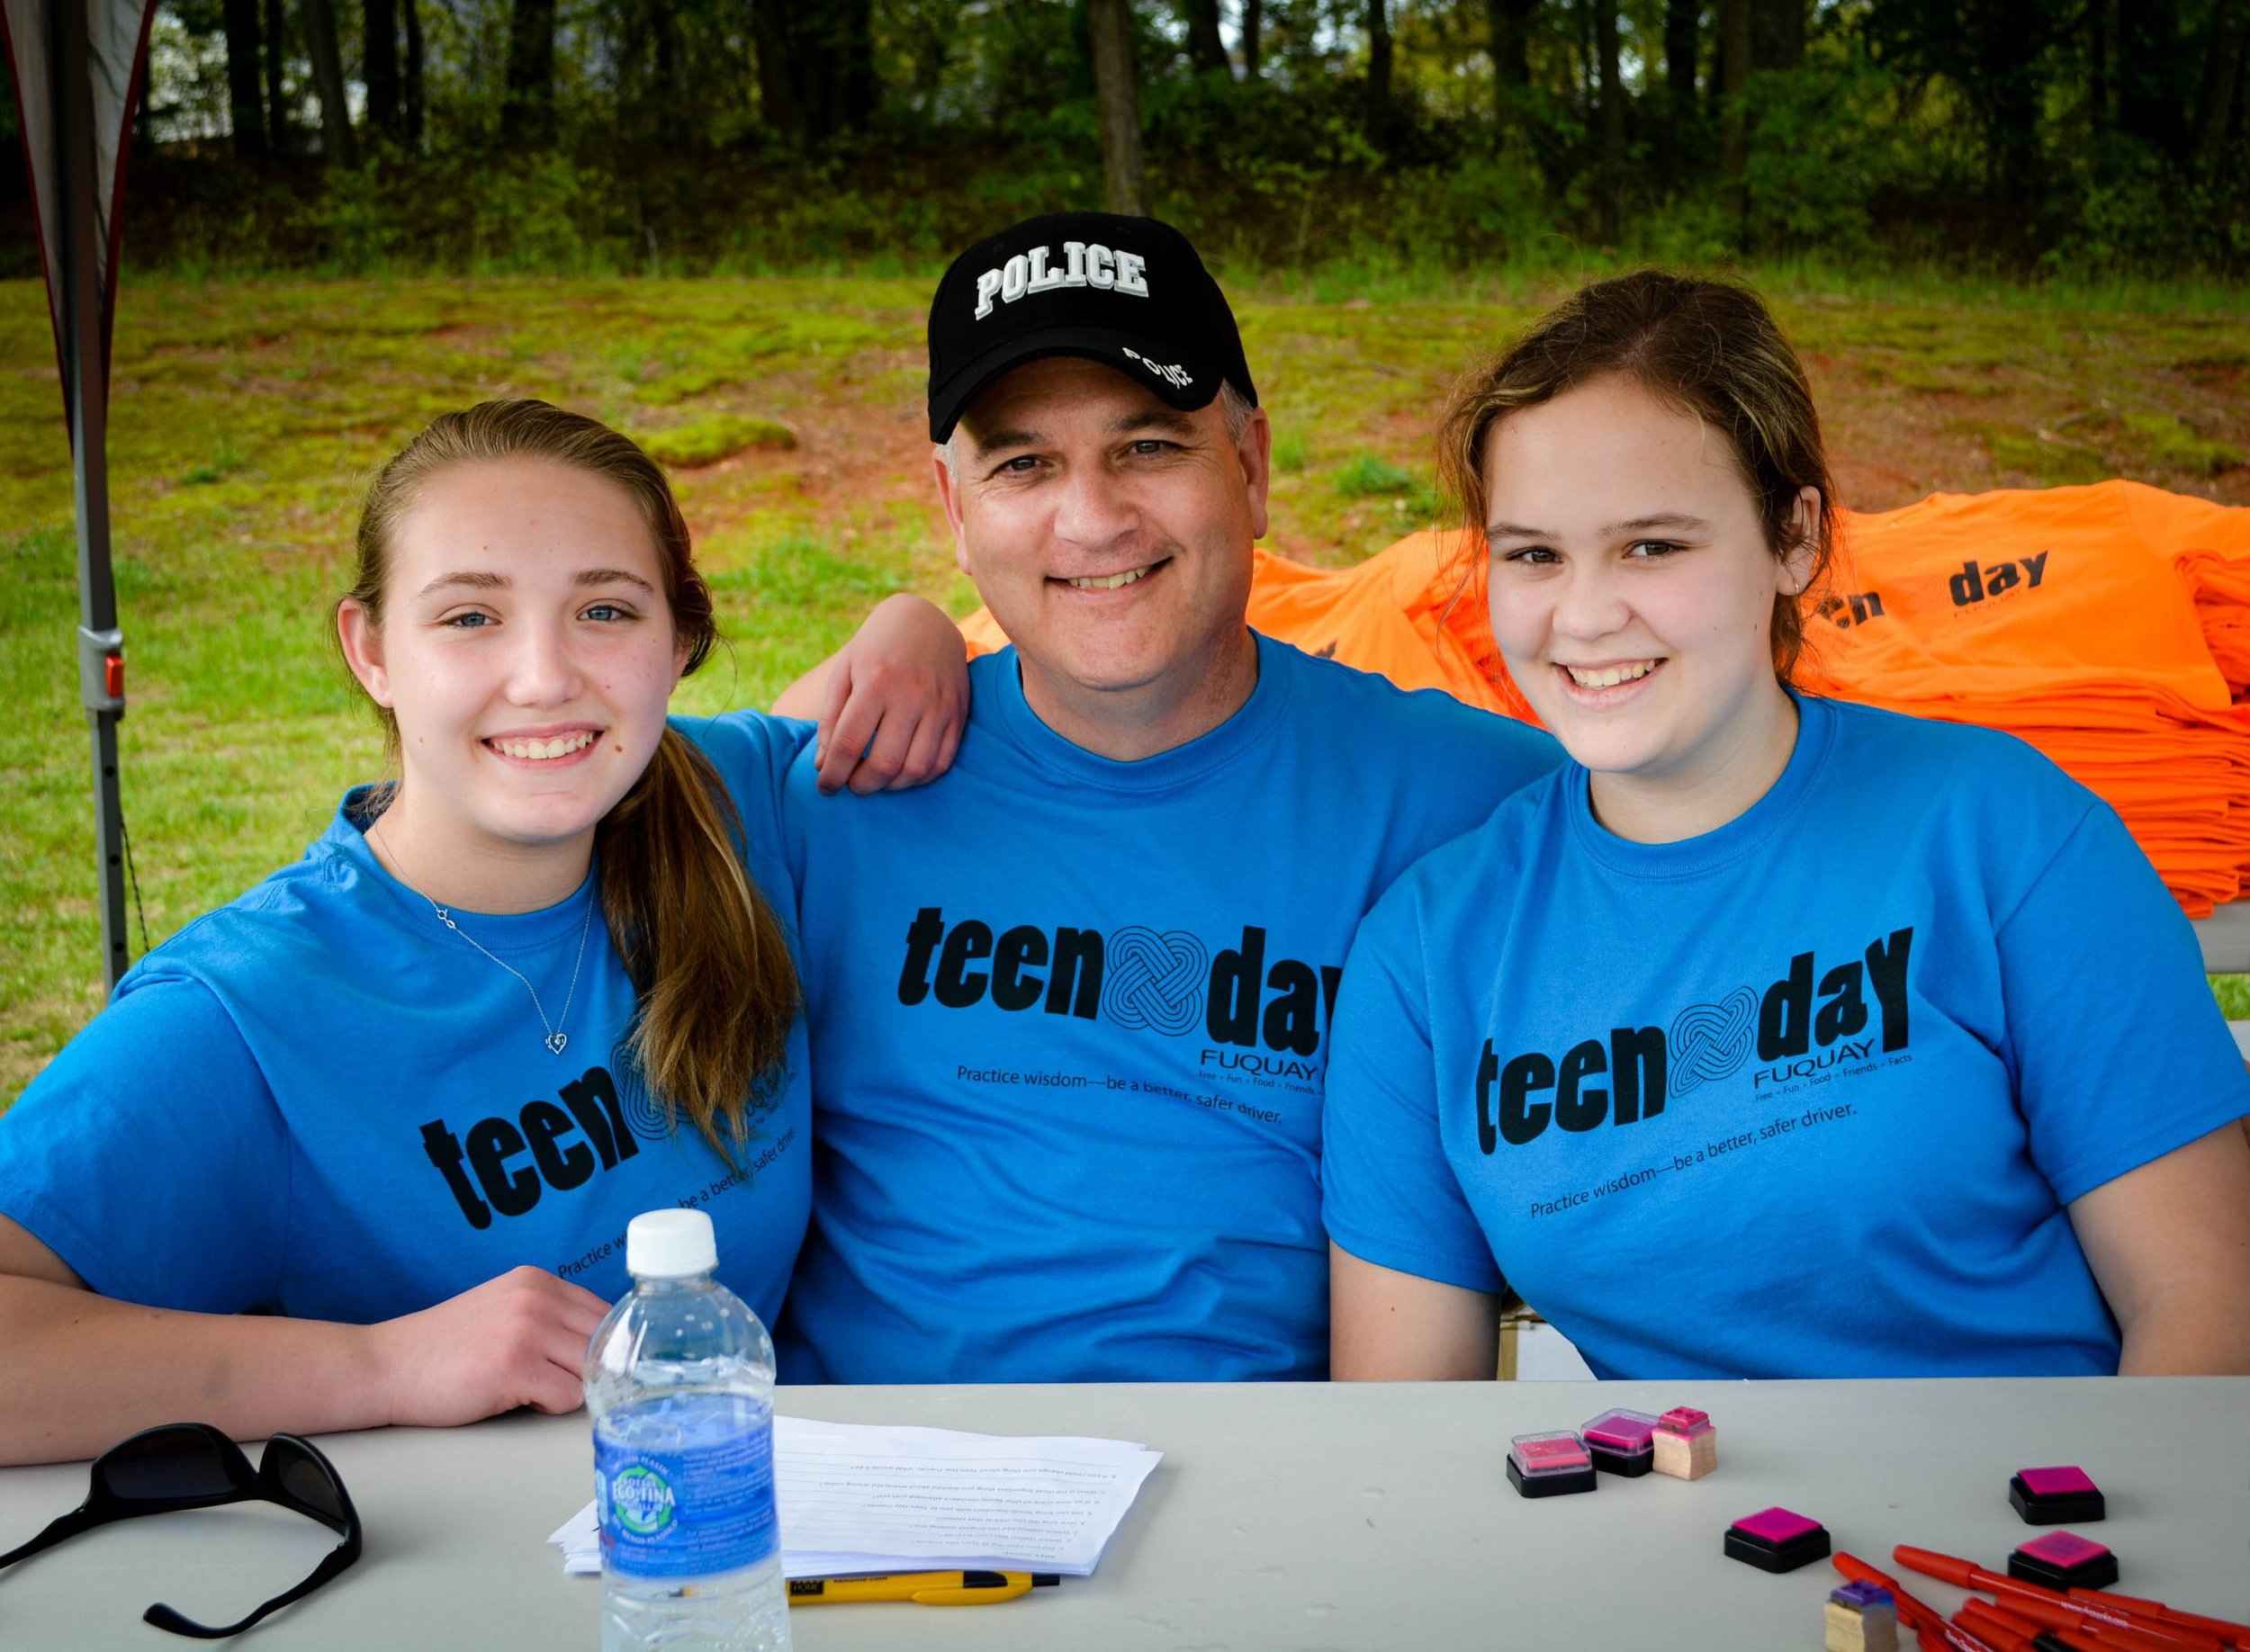 Teen Day Fuquay